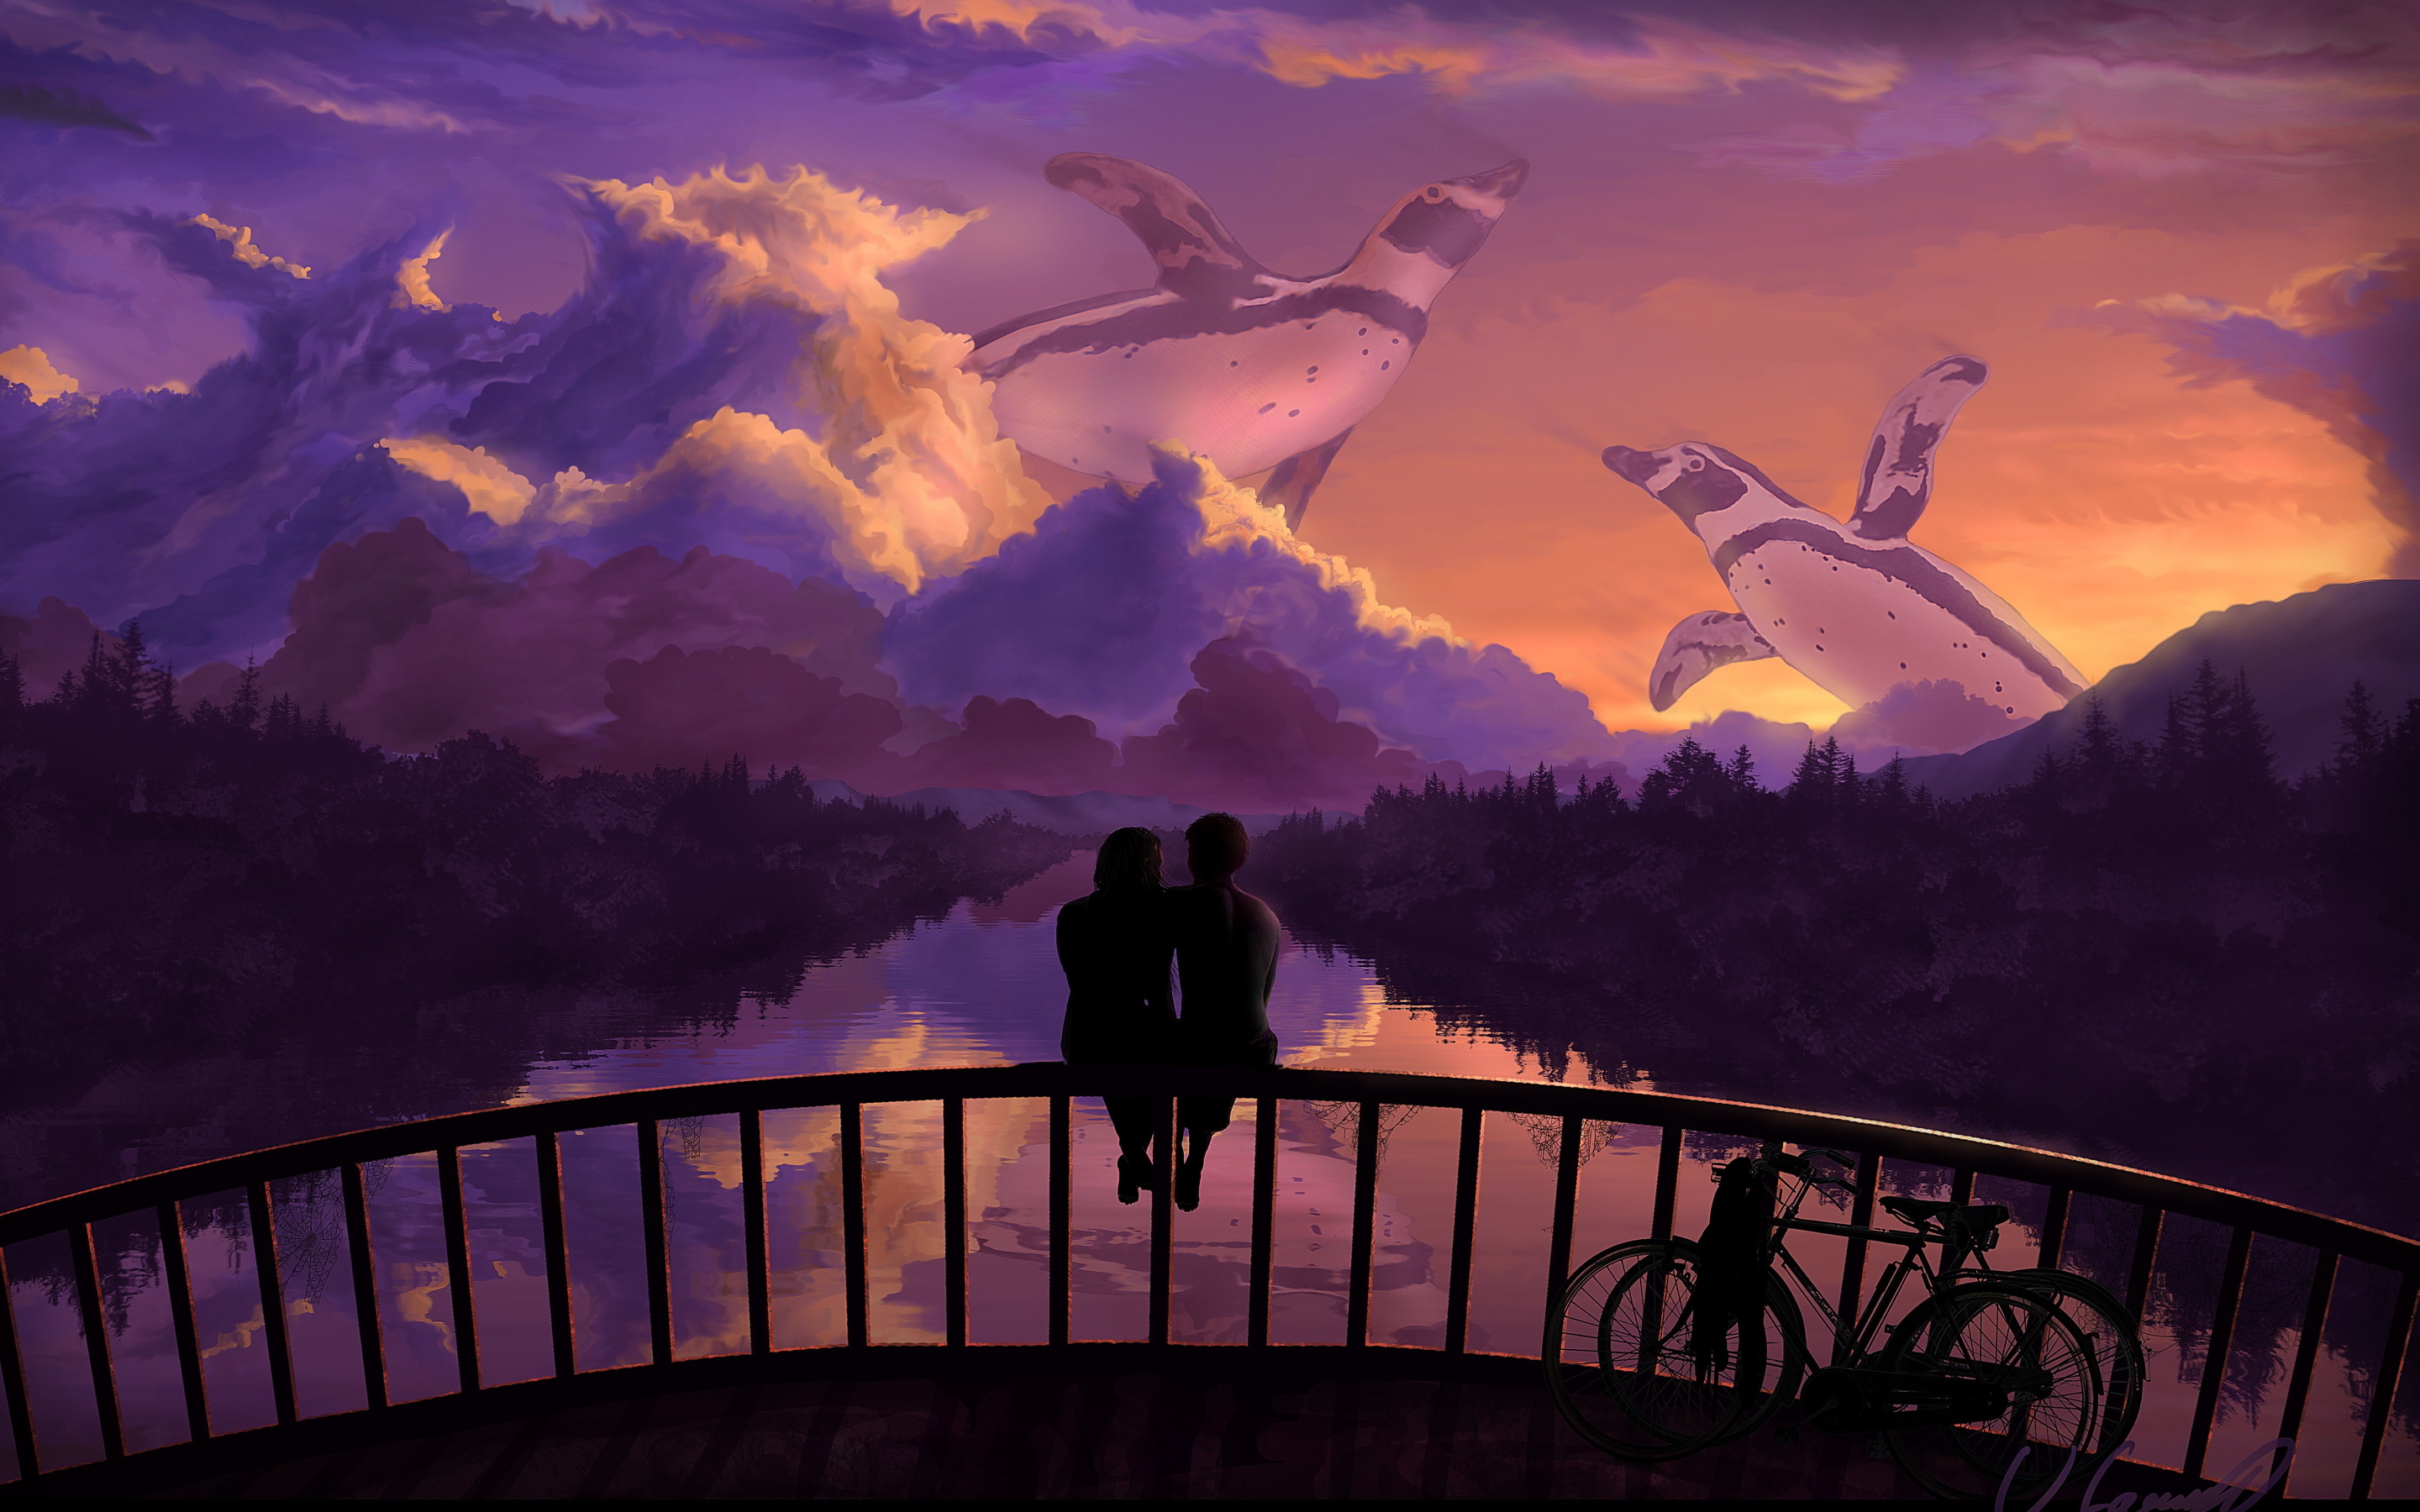 Romantic couple bridge sunset art